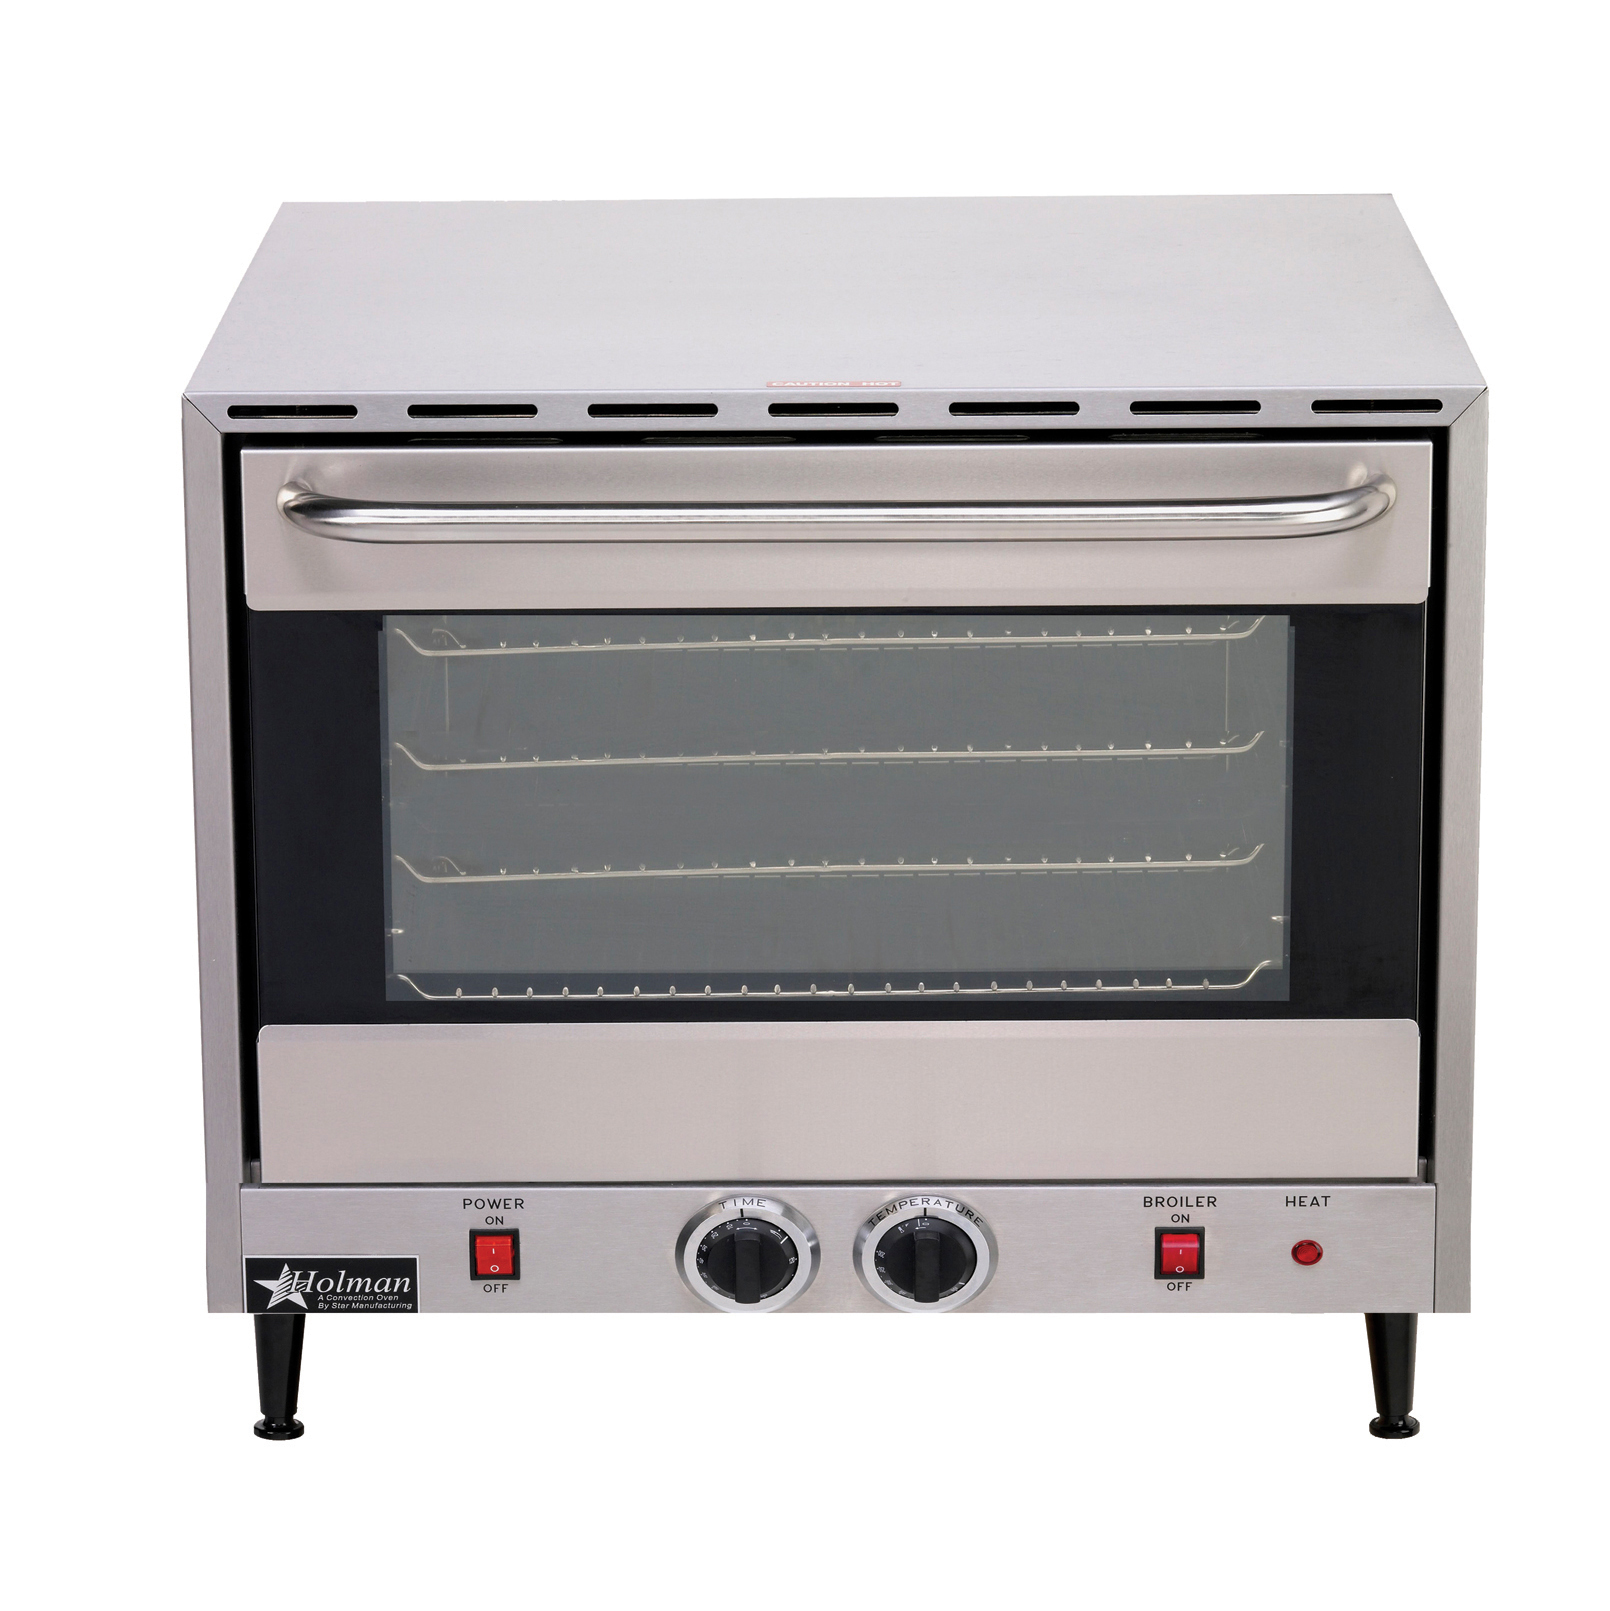 Star CCOH-4 convection oven, electric